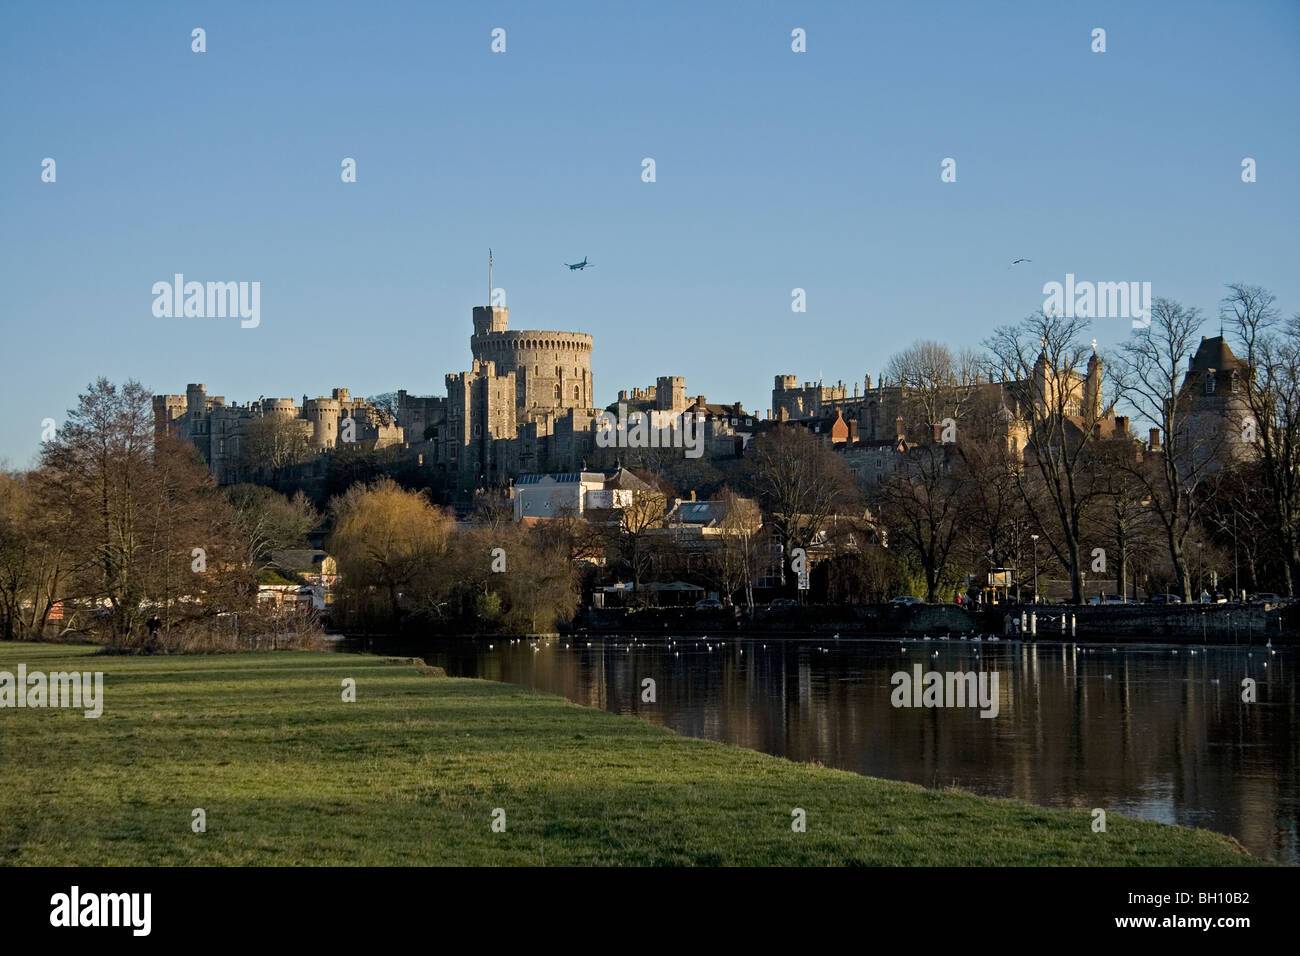 Windsor Castle with aircraft flying over on flight path to Heathrow - Stock Image